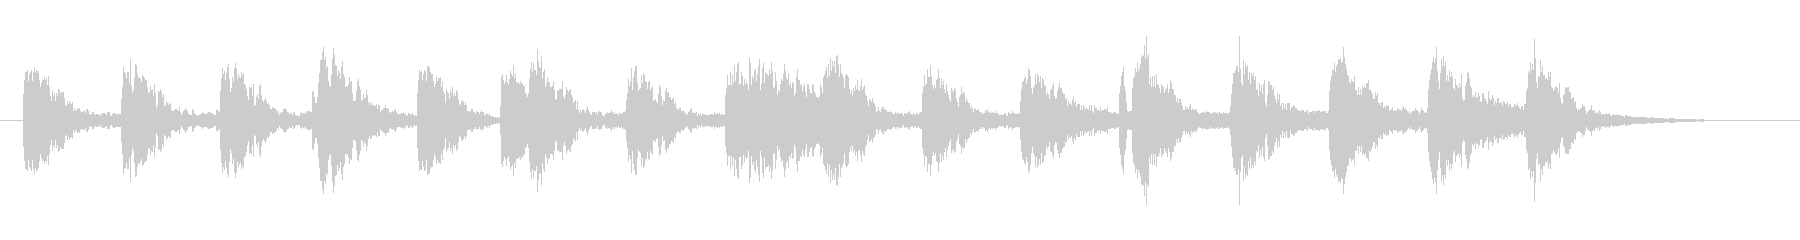 Mysterious and fantastic jingle's unreproduced waveform